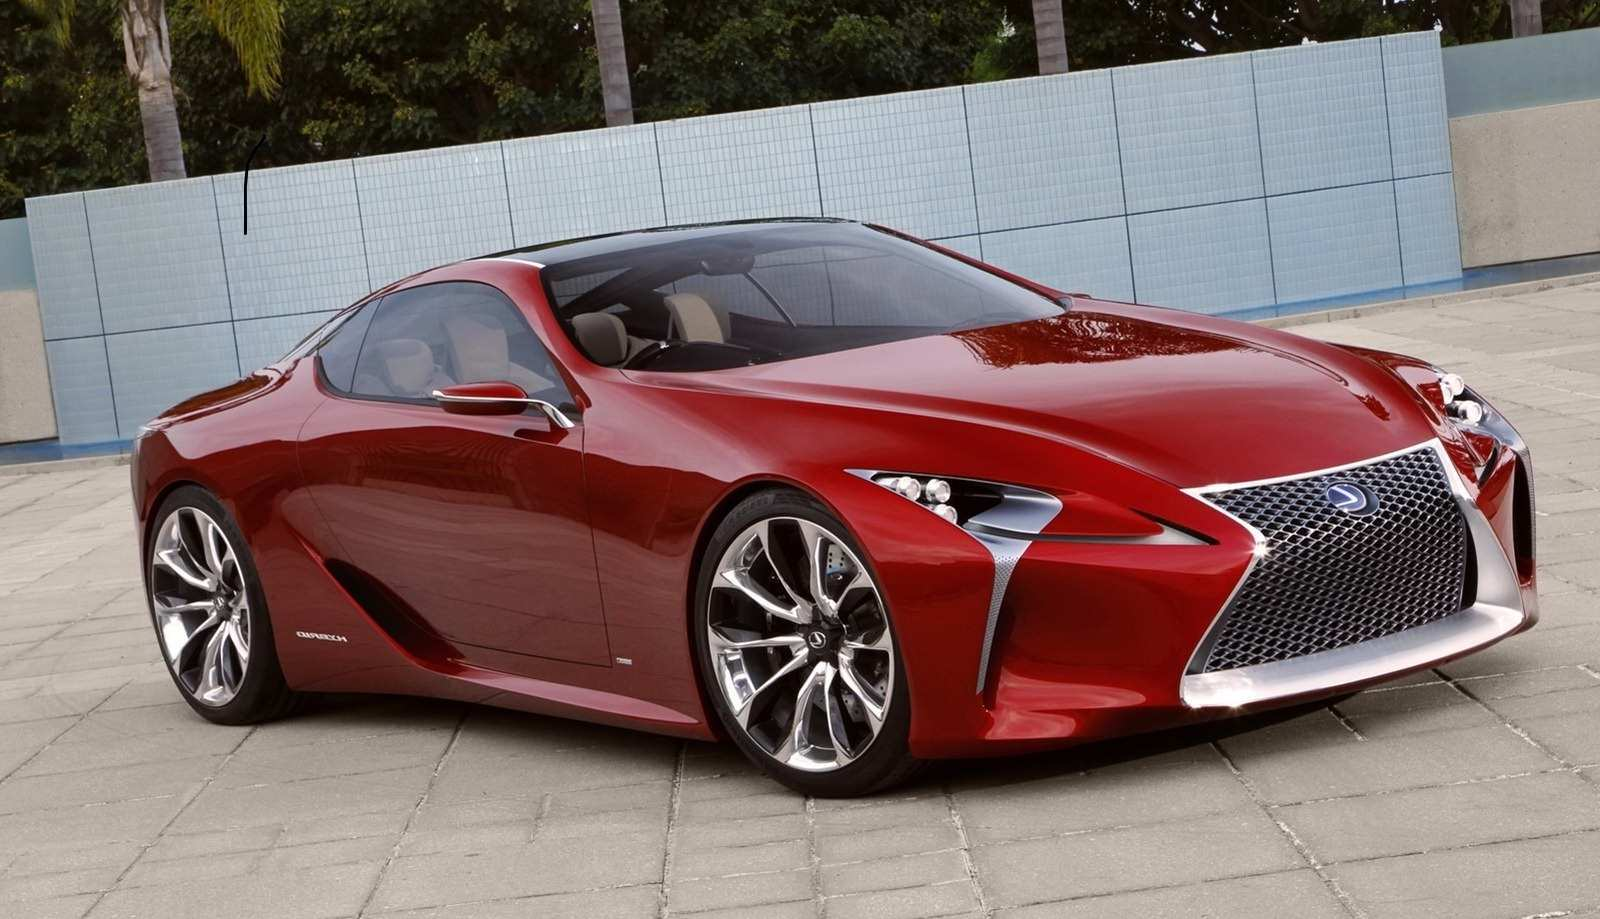 24 Concept of 2019 Lexus Concept Reviews by 2019 Lexus Concept